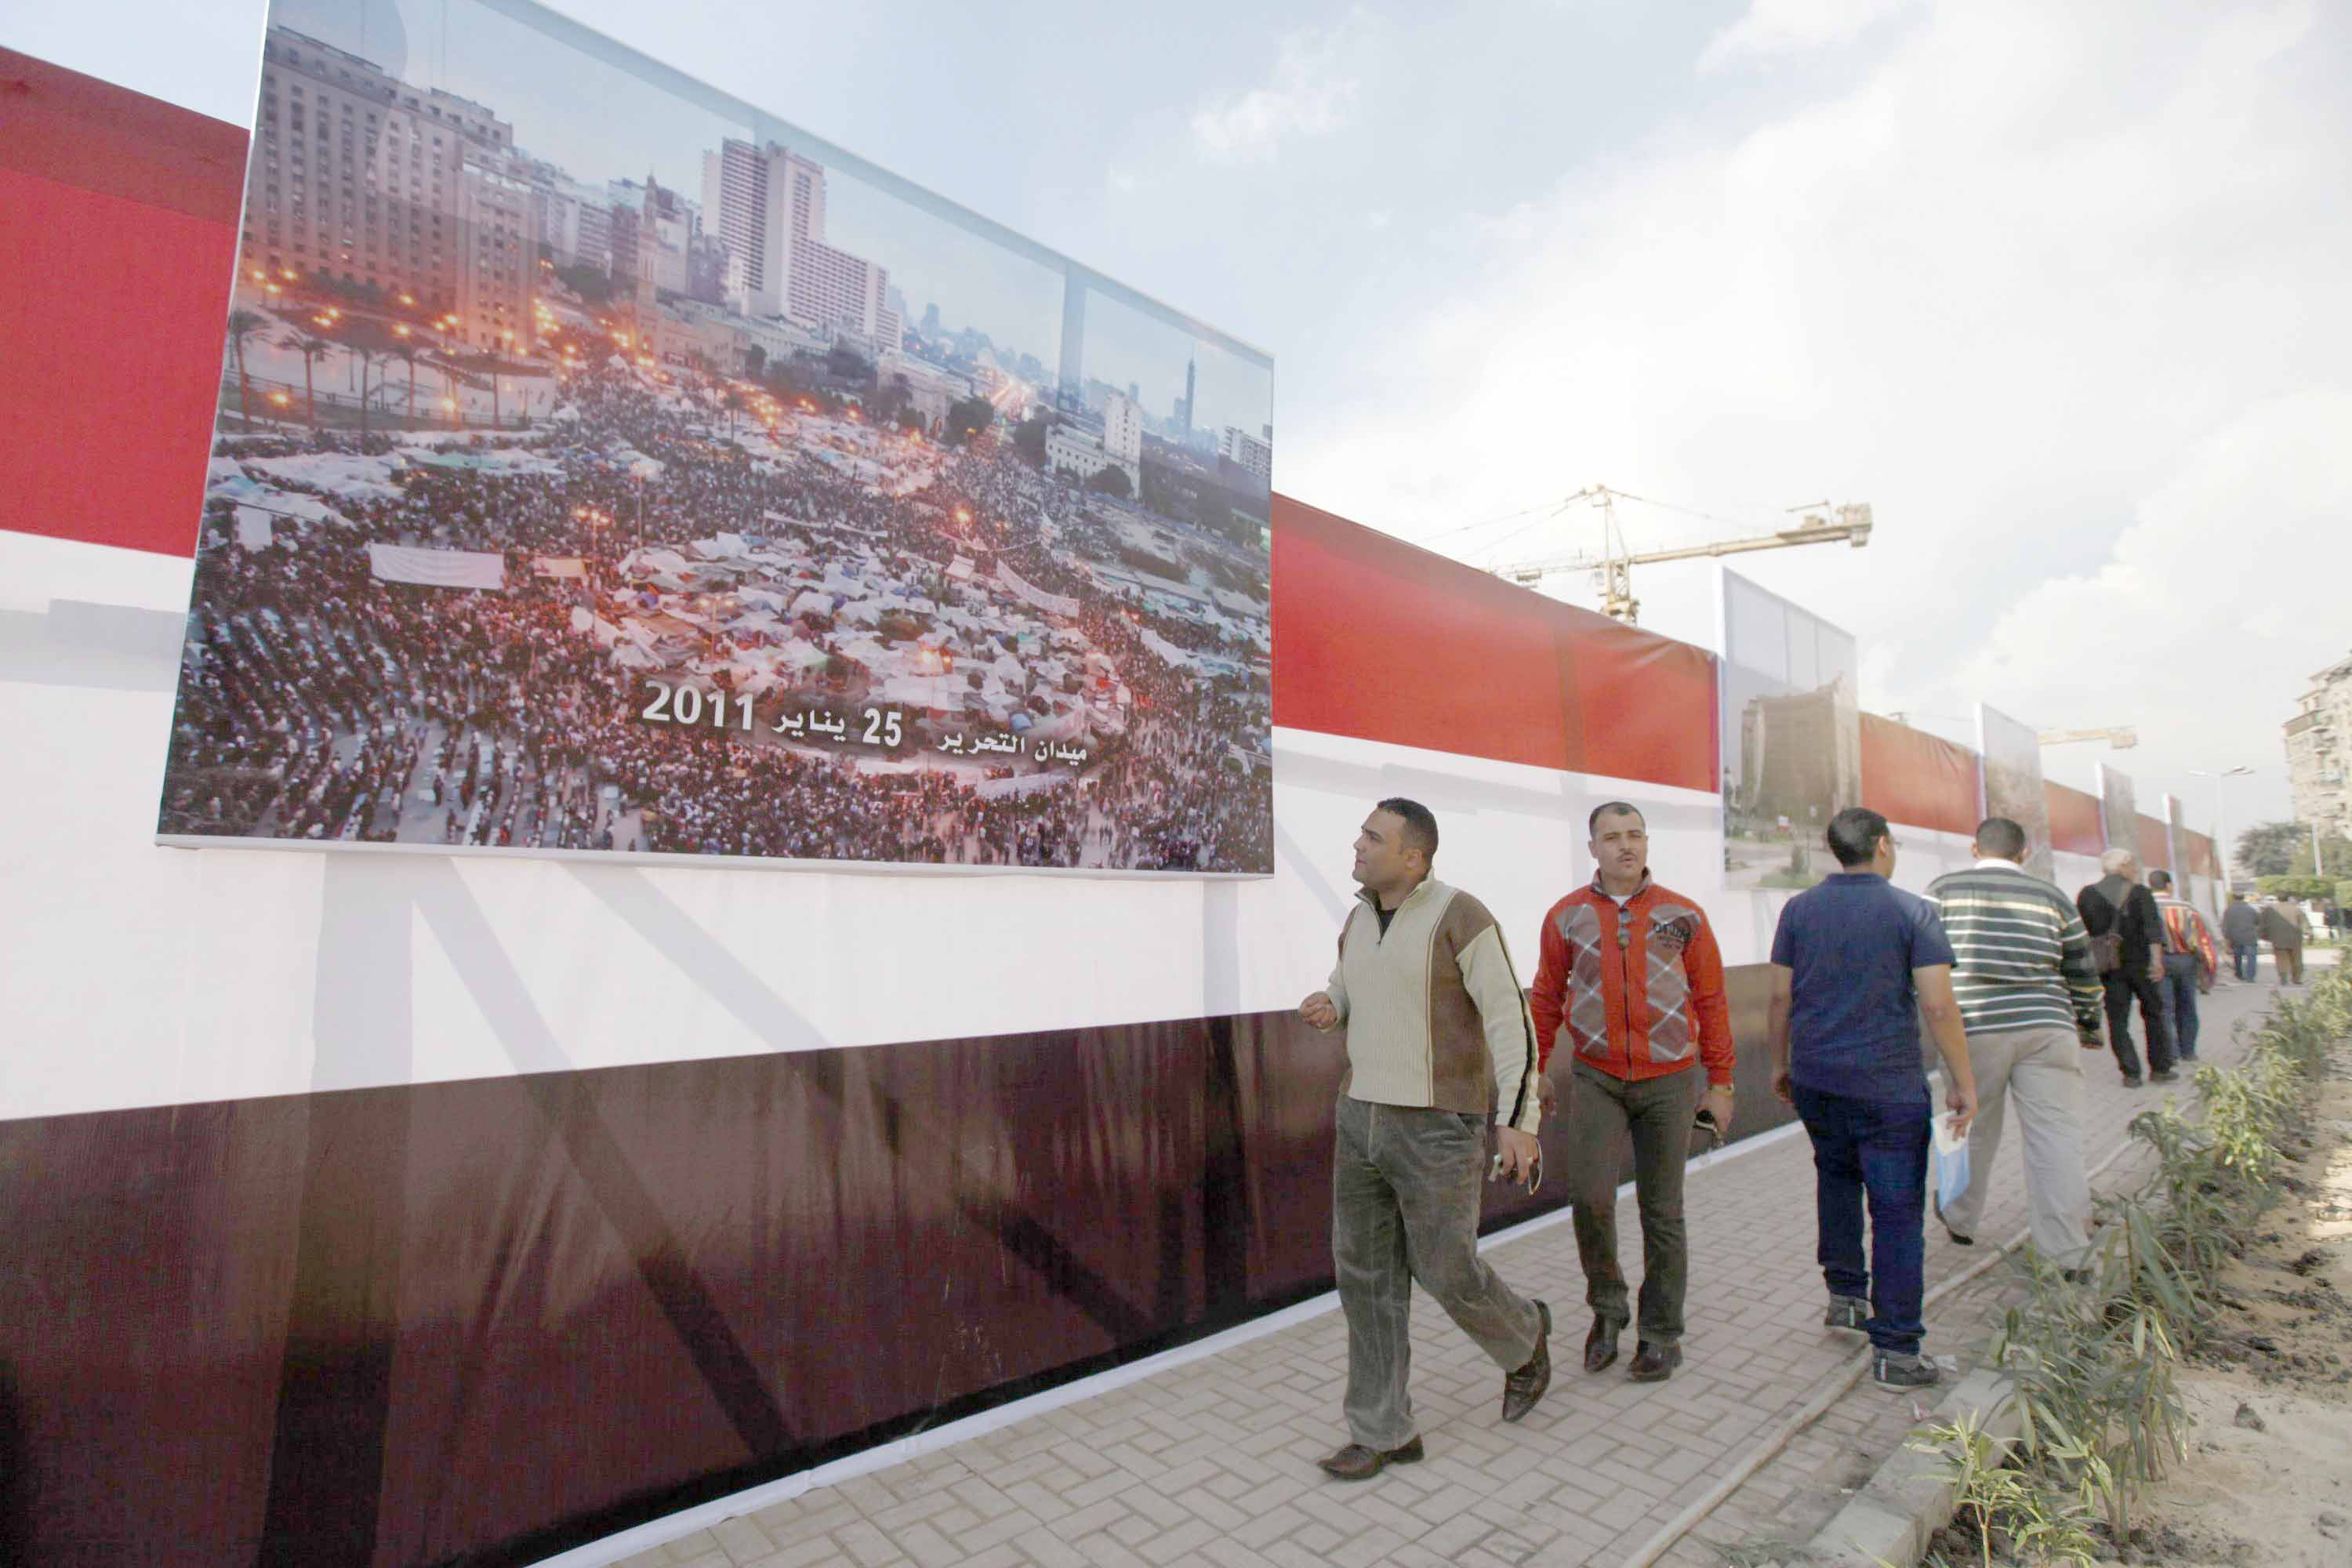 People walk in front of pictures of Tahrir Square to commemorate those killed during the Mohamed Mahmoud Street battles in 2011. (Reuters)